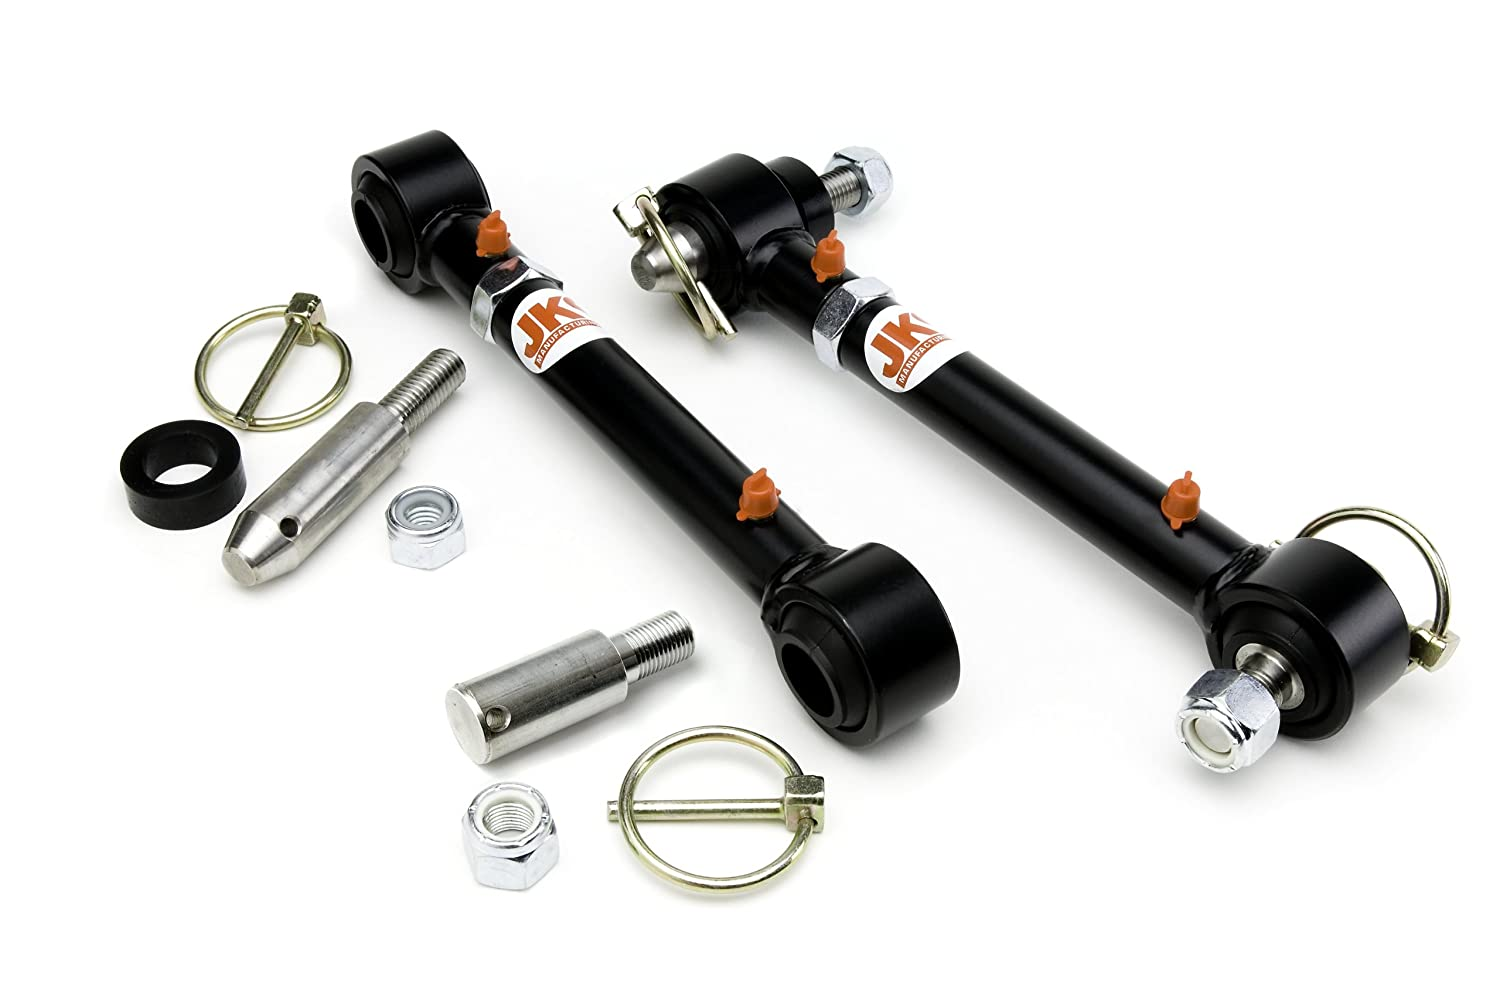 Jks 2034 Front Swaybar Quicker Disconnect System For 2008 Wiring Diagram Jeep Patriot Forums Jk Automotive